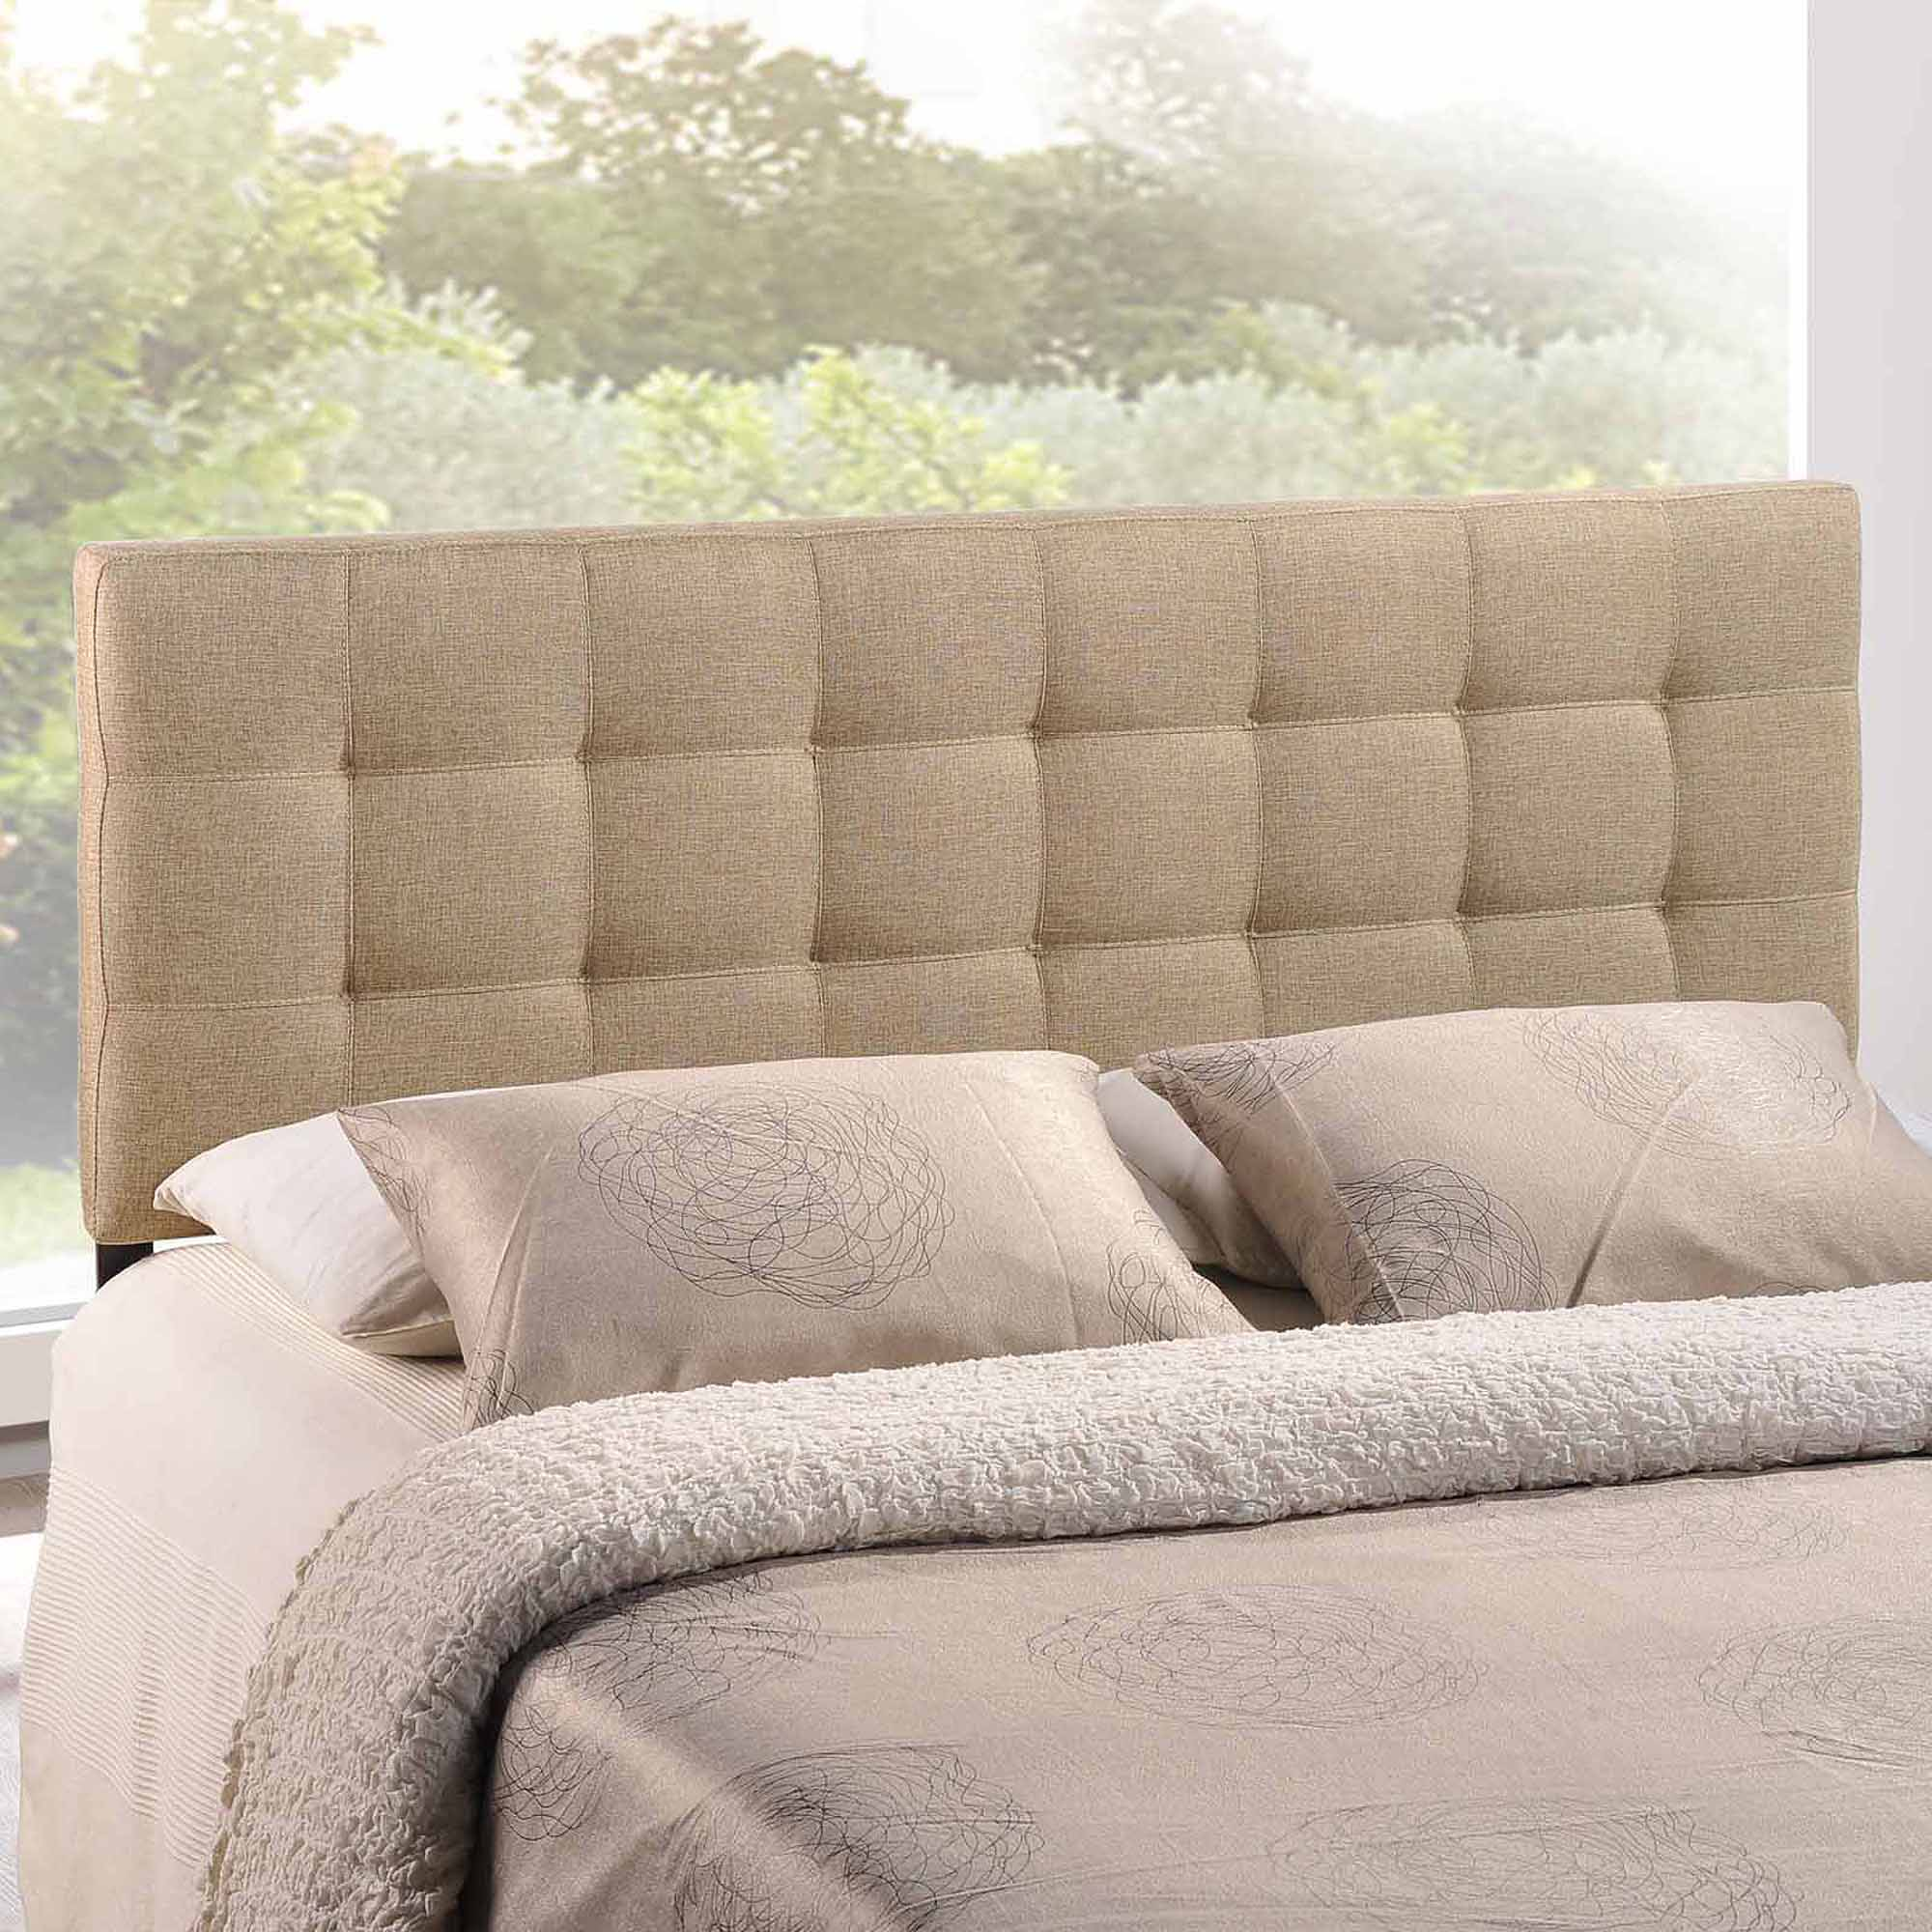 modway lily king upholstered headboard multiple colors  walmartcom -